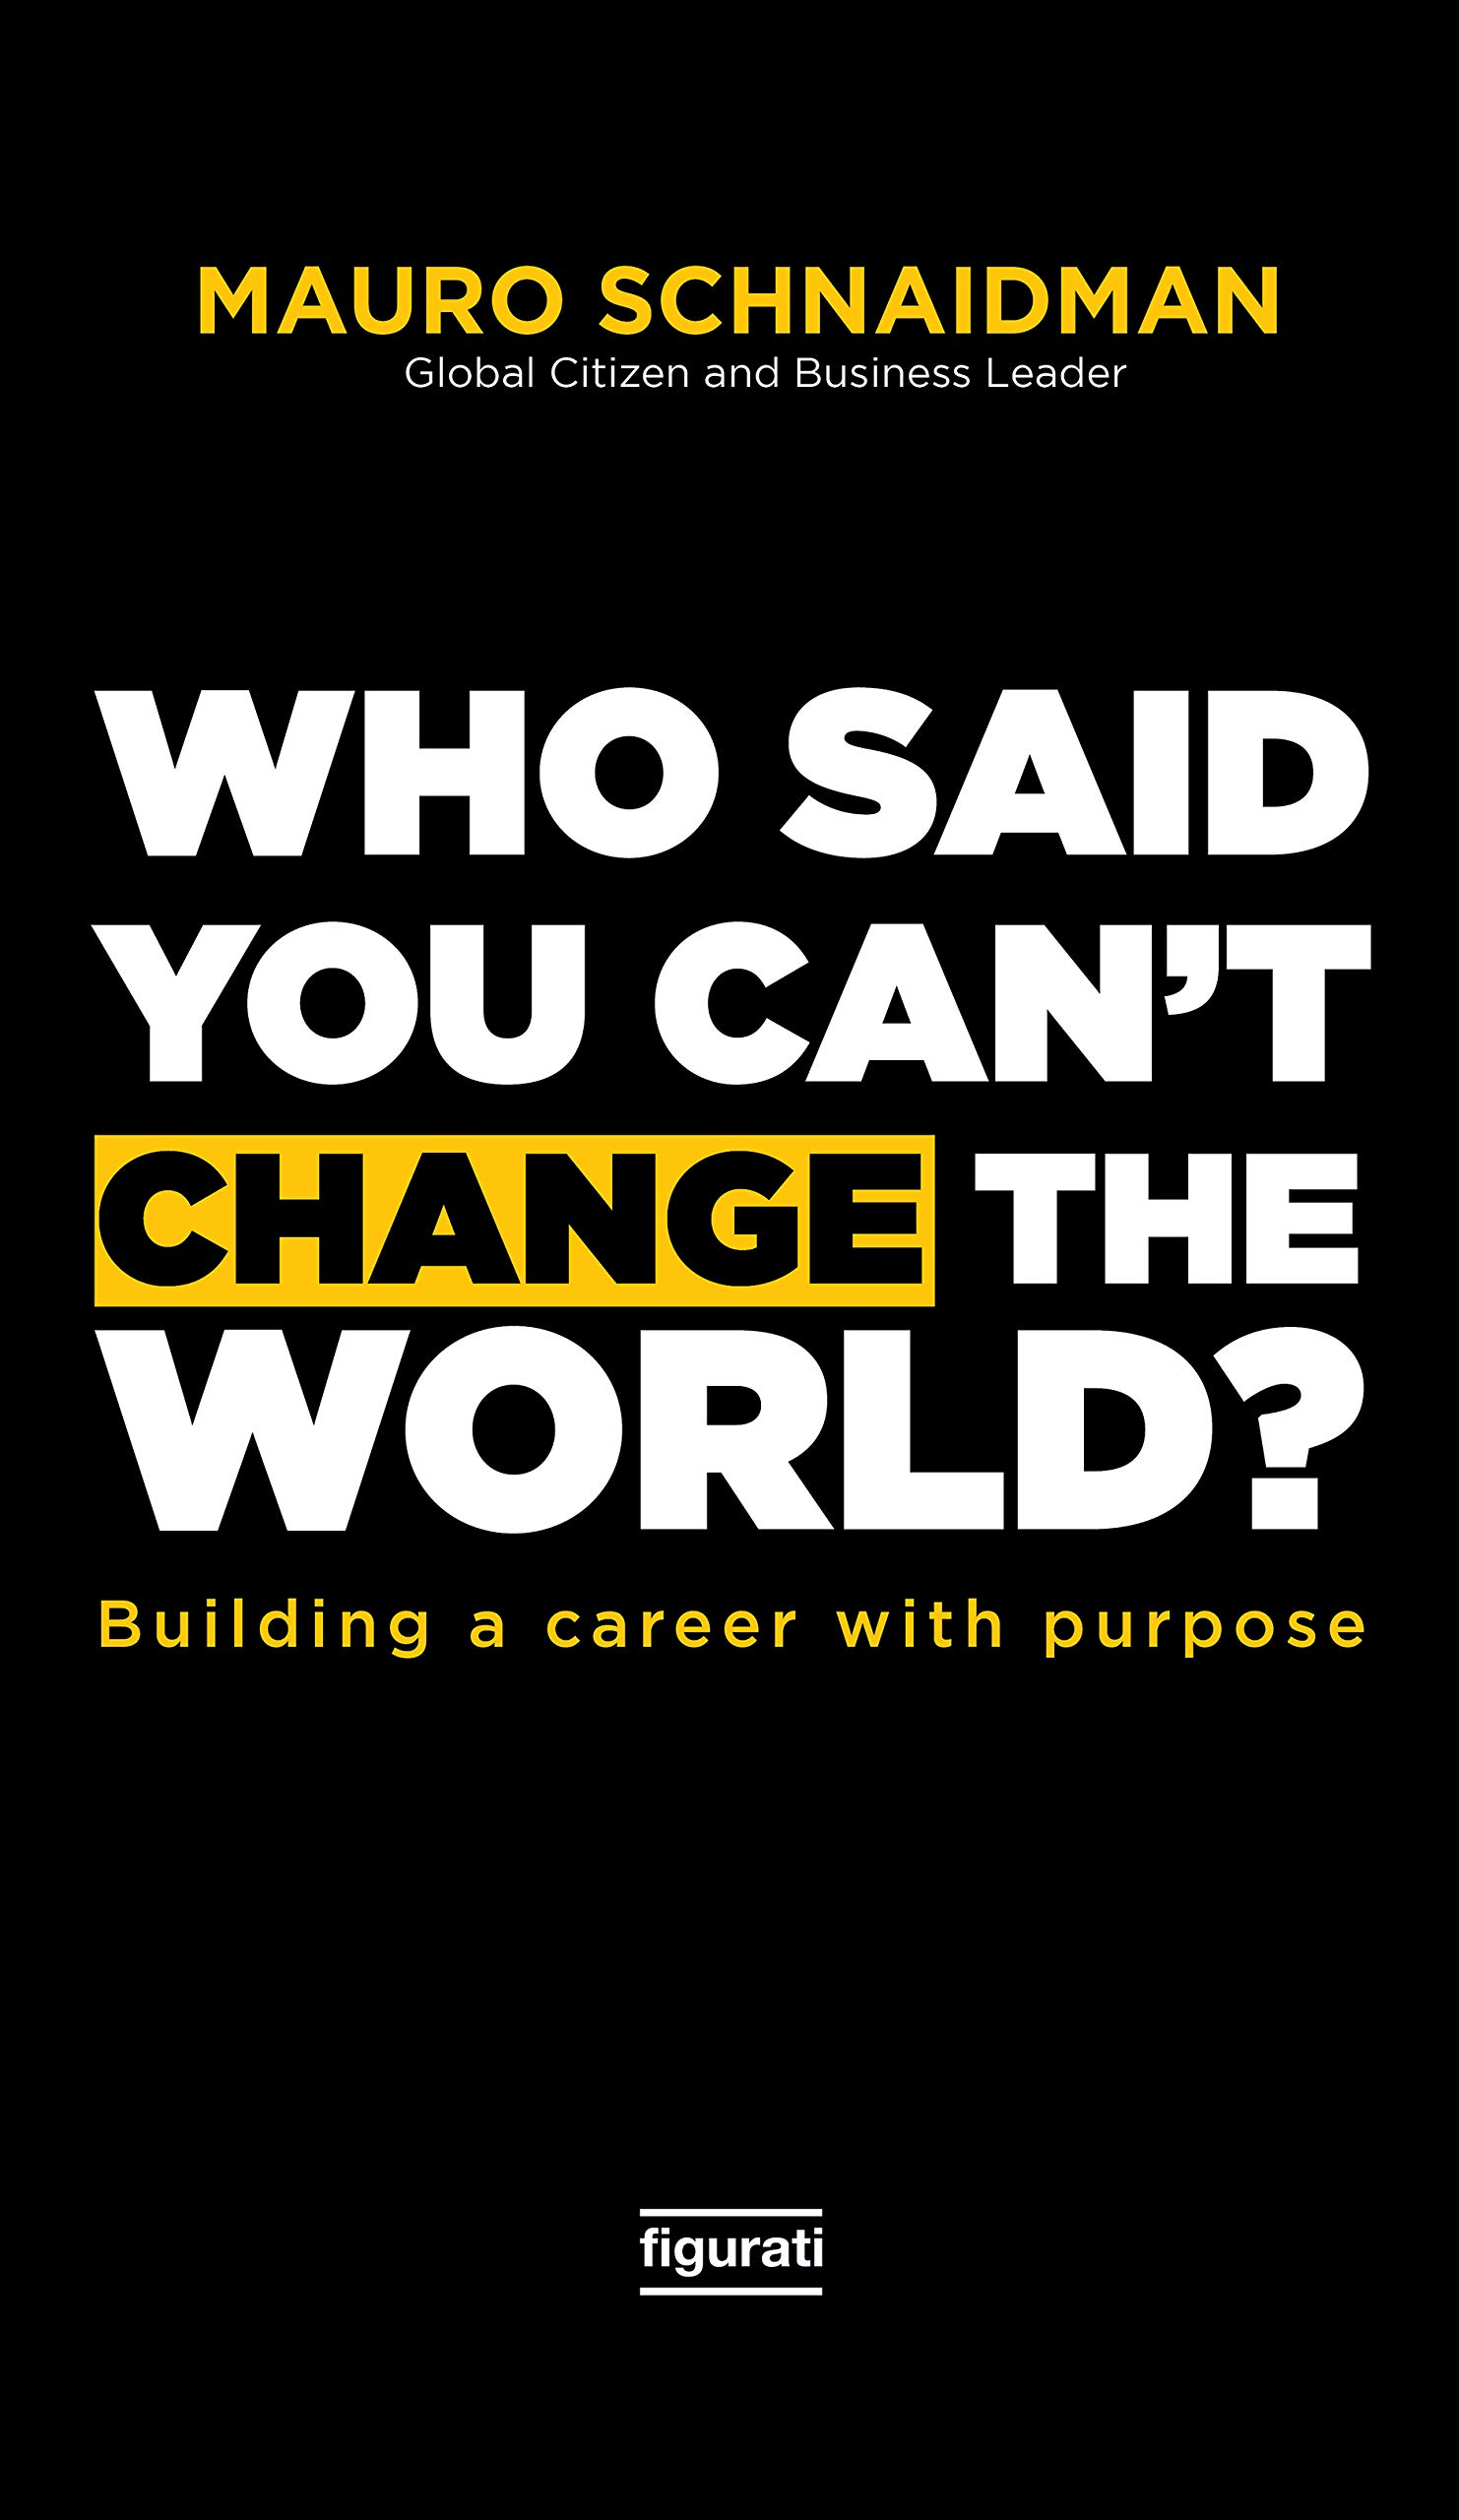 Who said you can't change the world?: Building a career with purpose